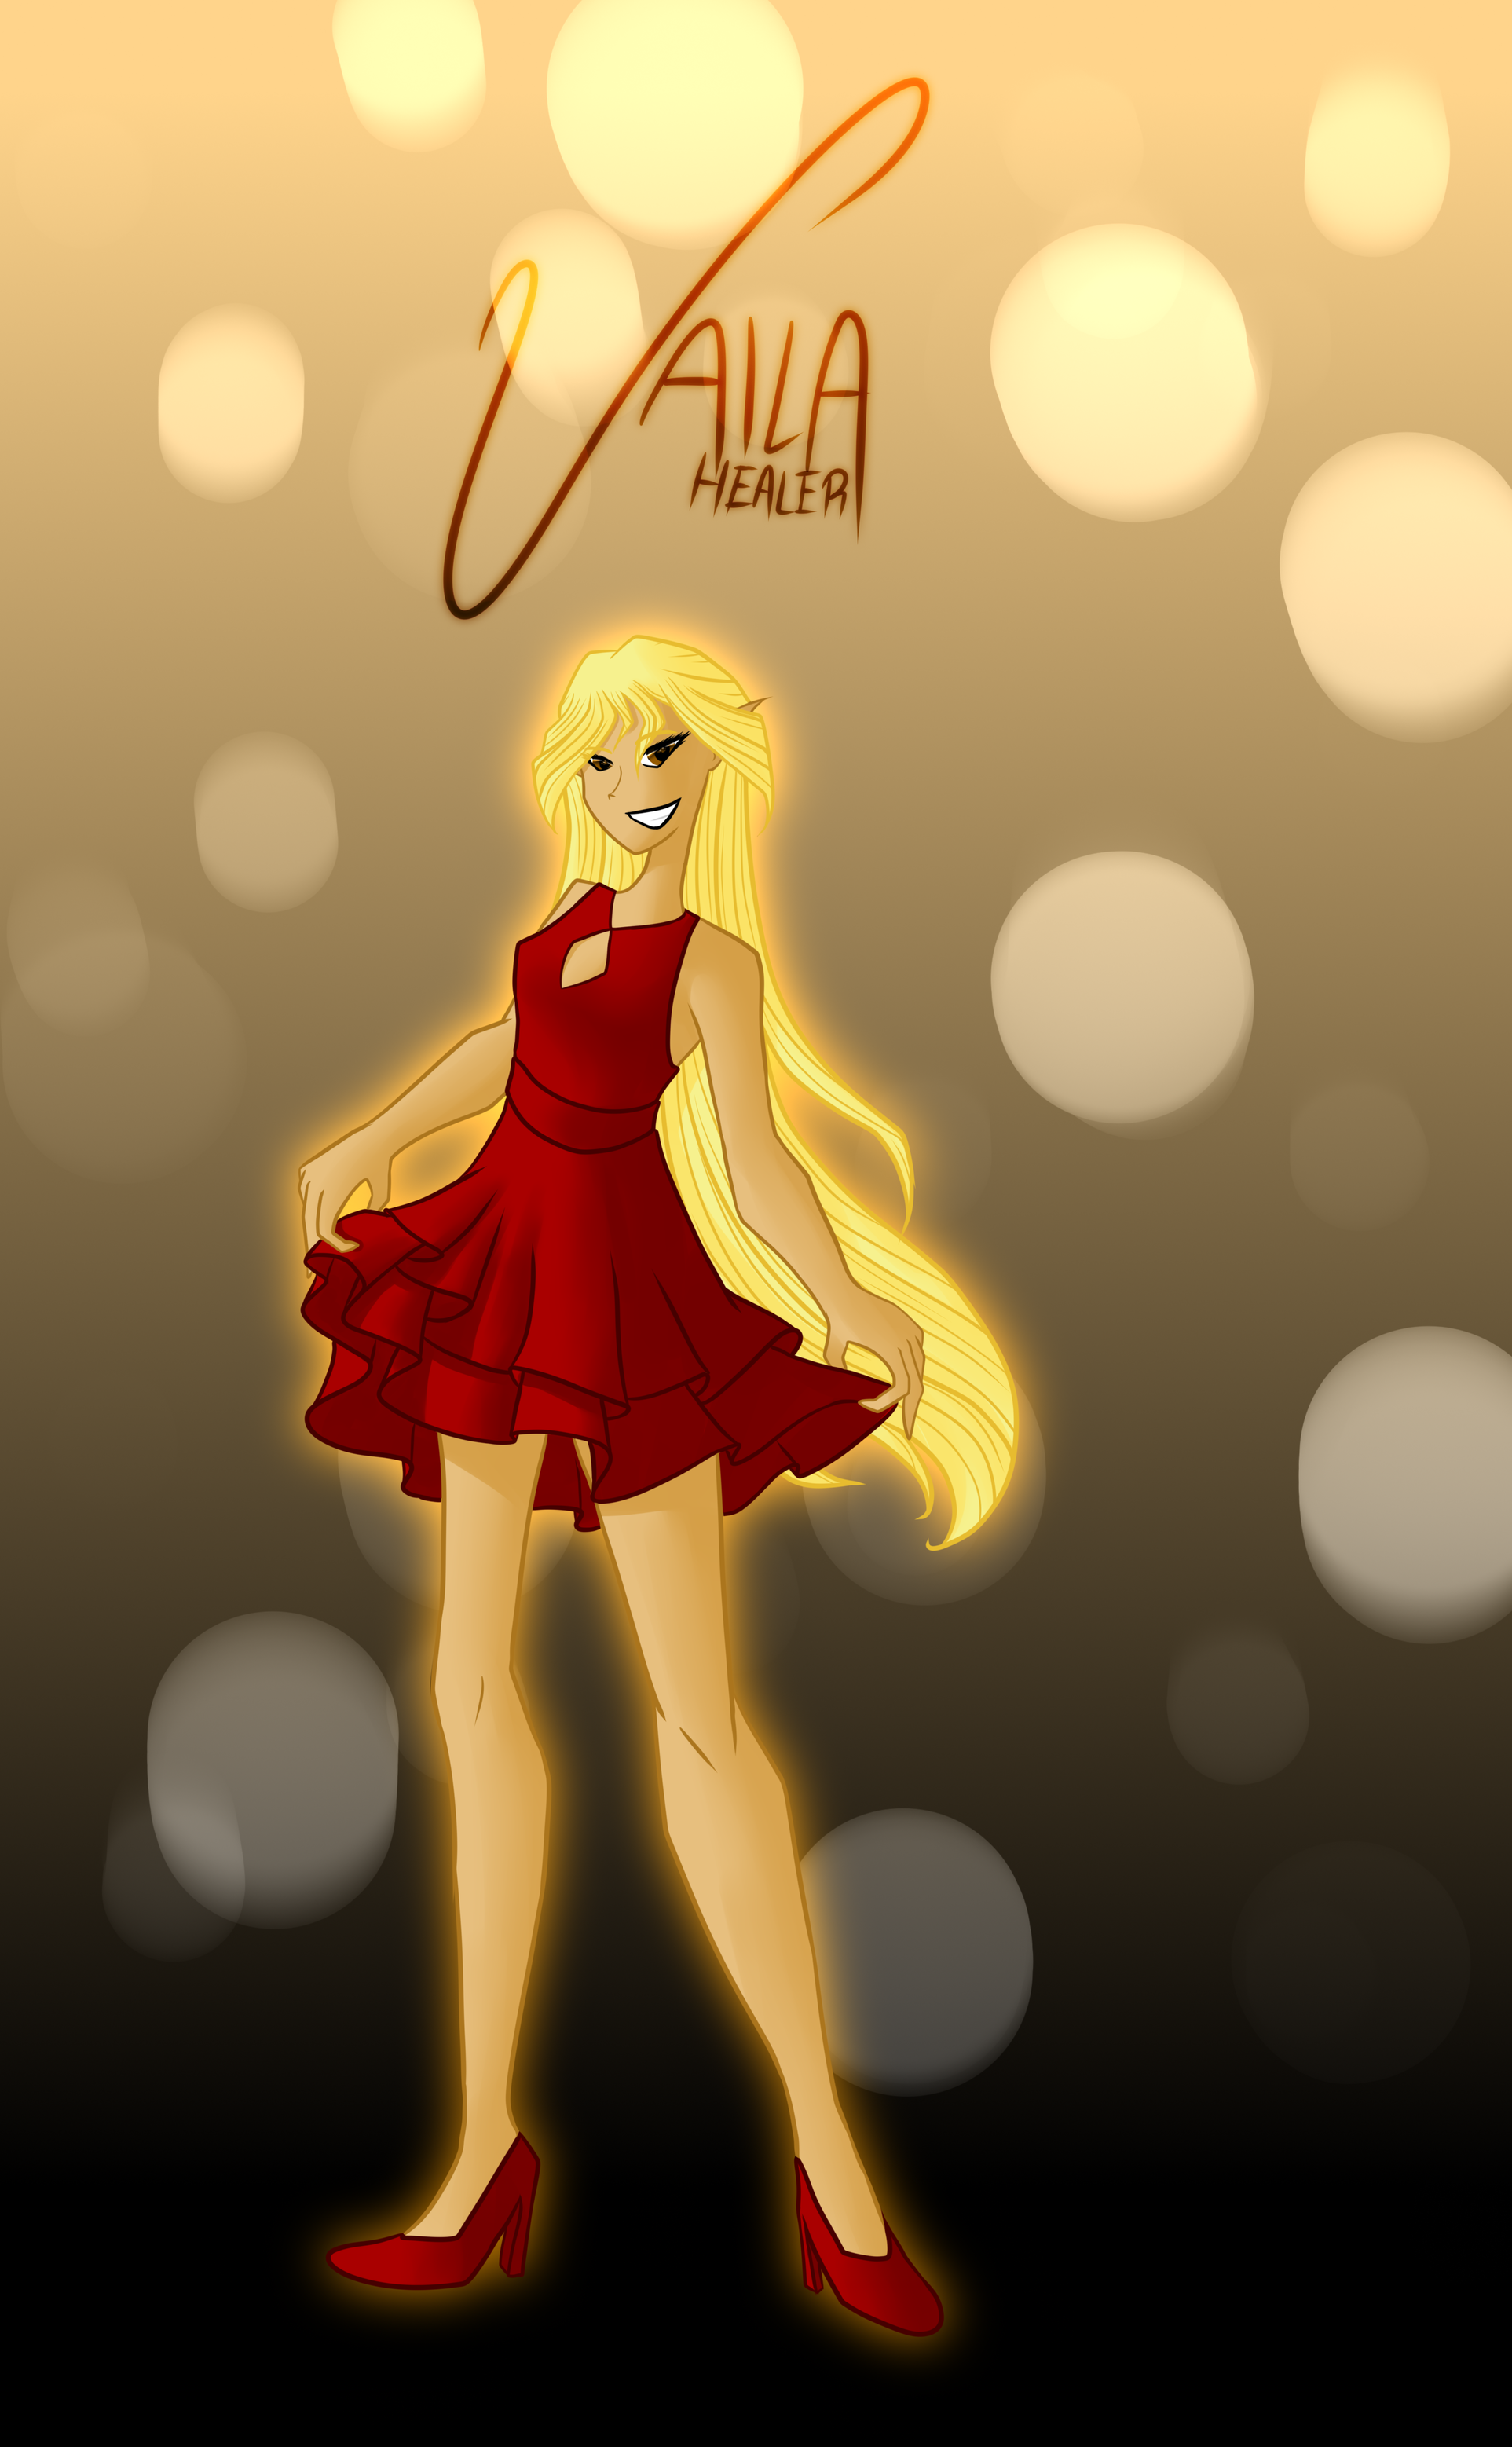 Vaila by SorceressIgnis